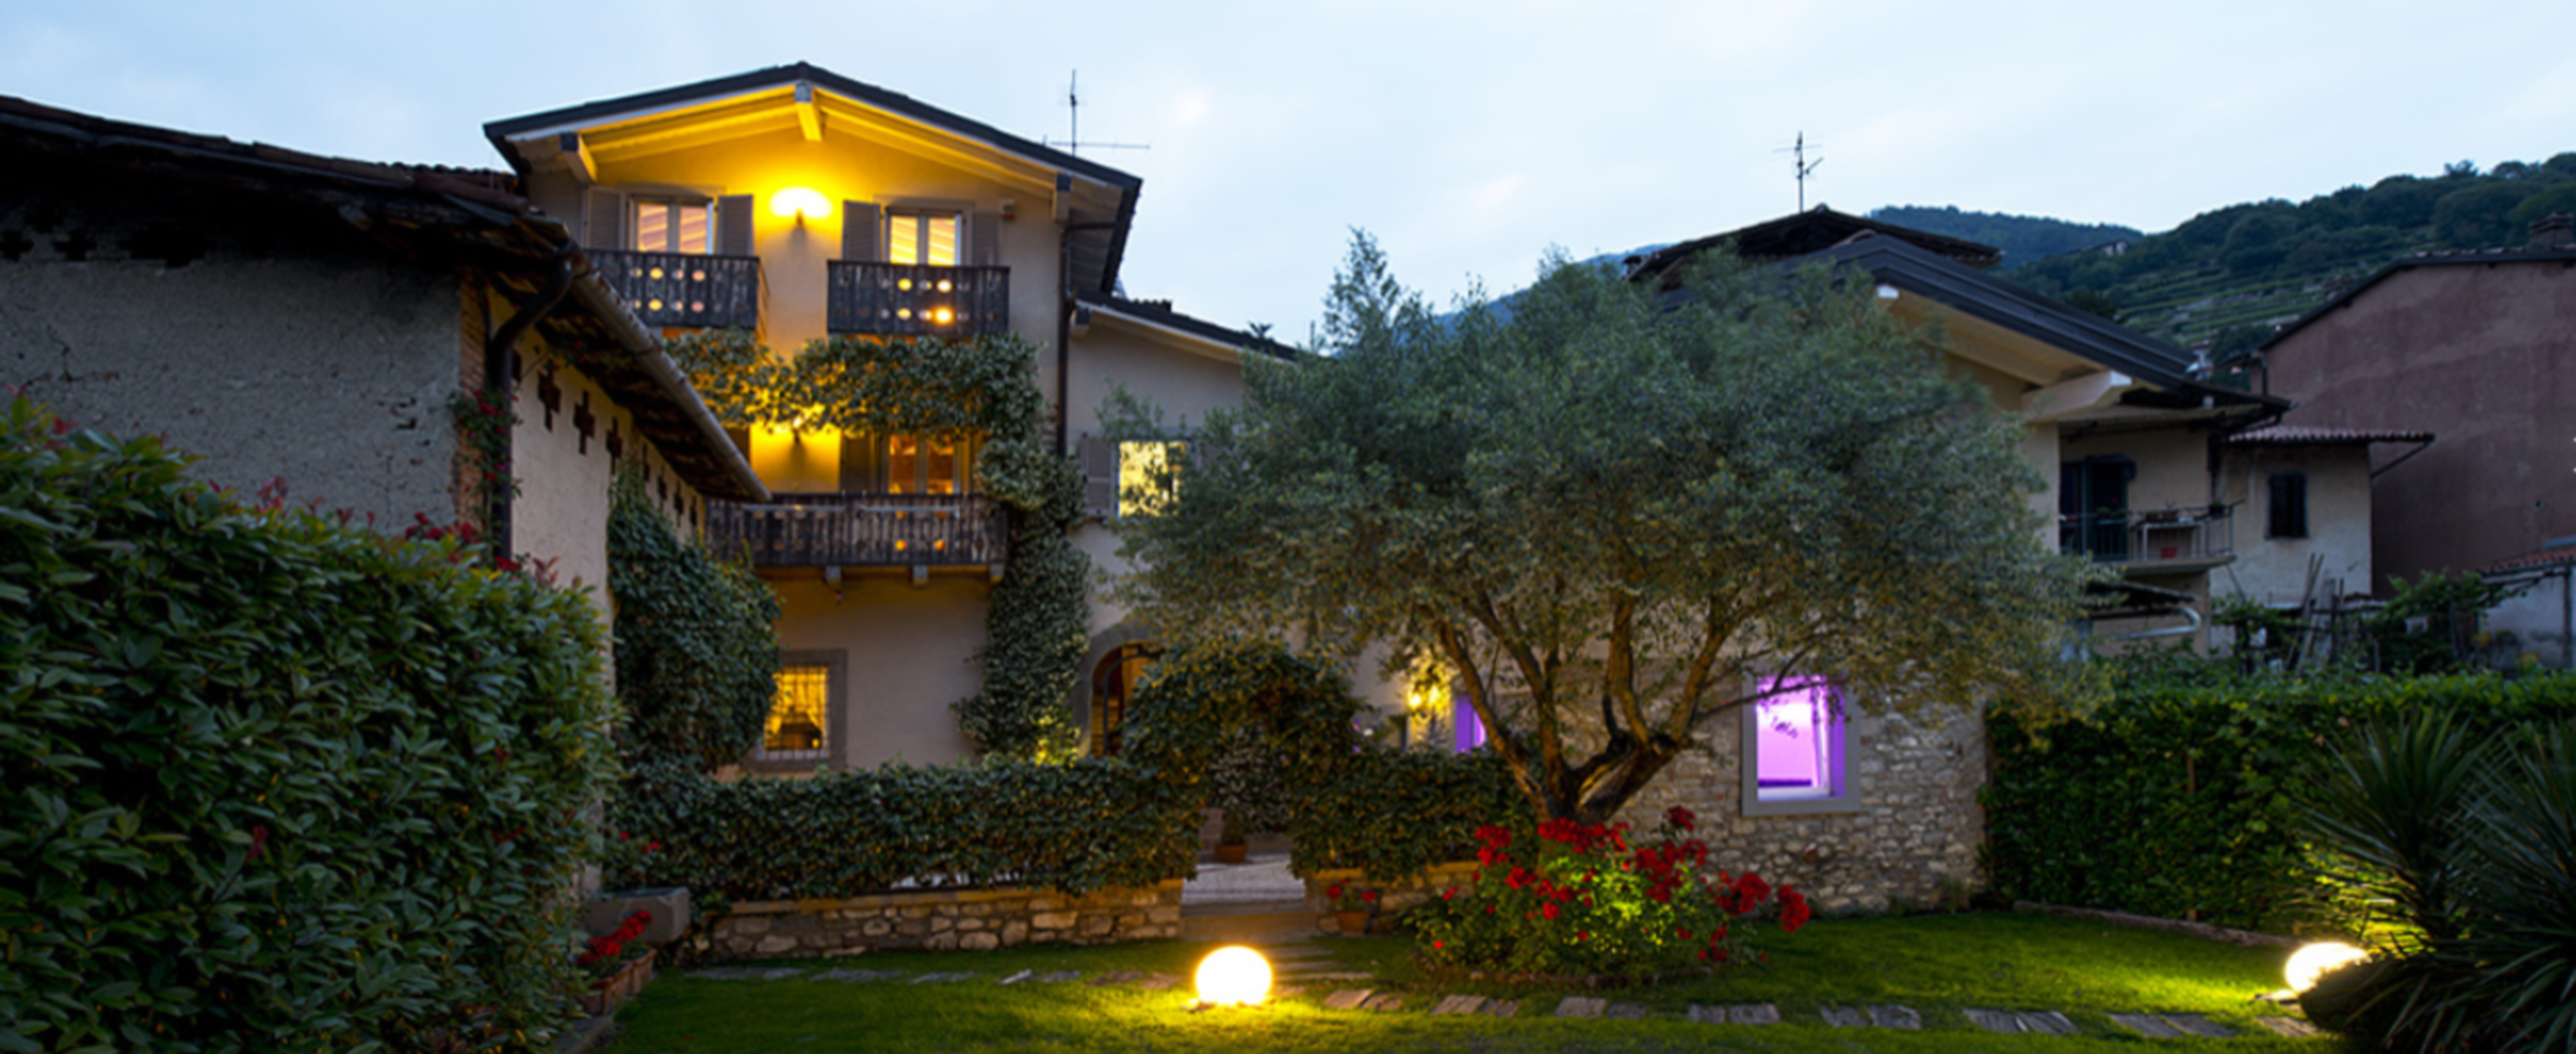 A view of a house at Bed and Breakfast Casa Del Nonno.